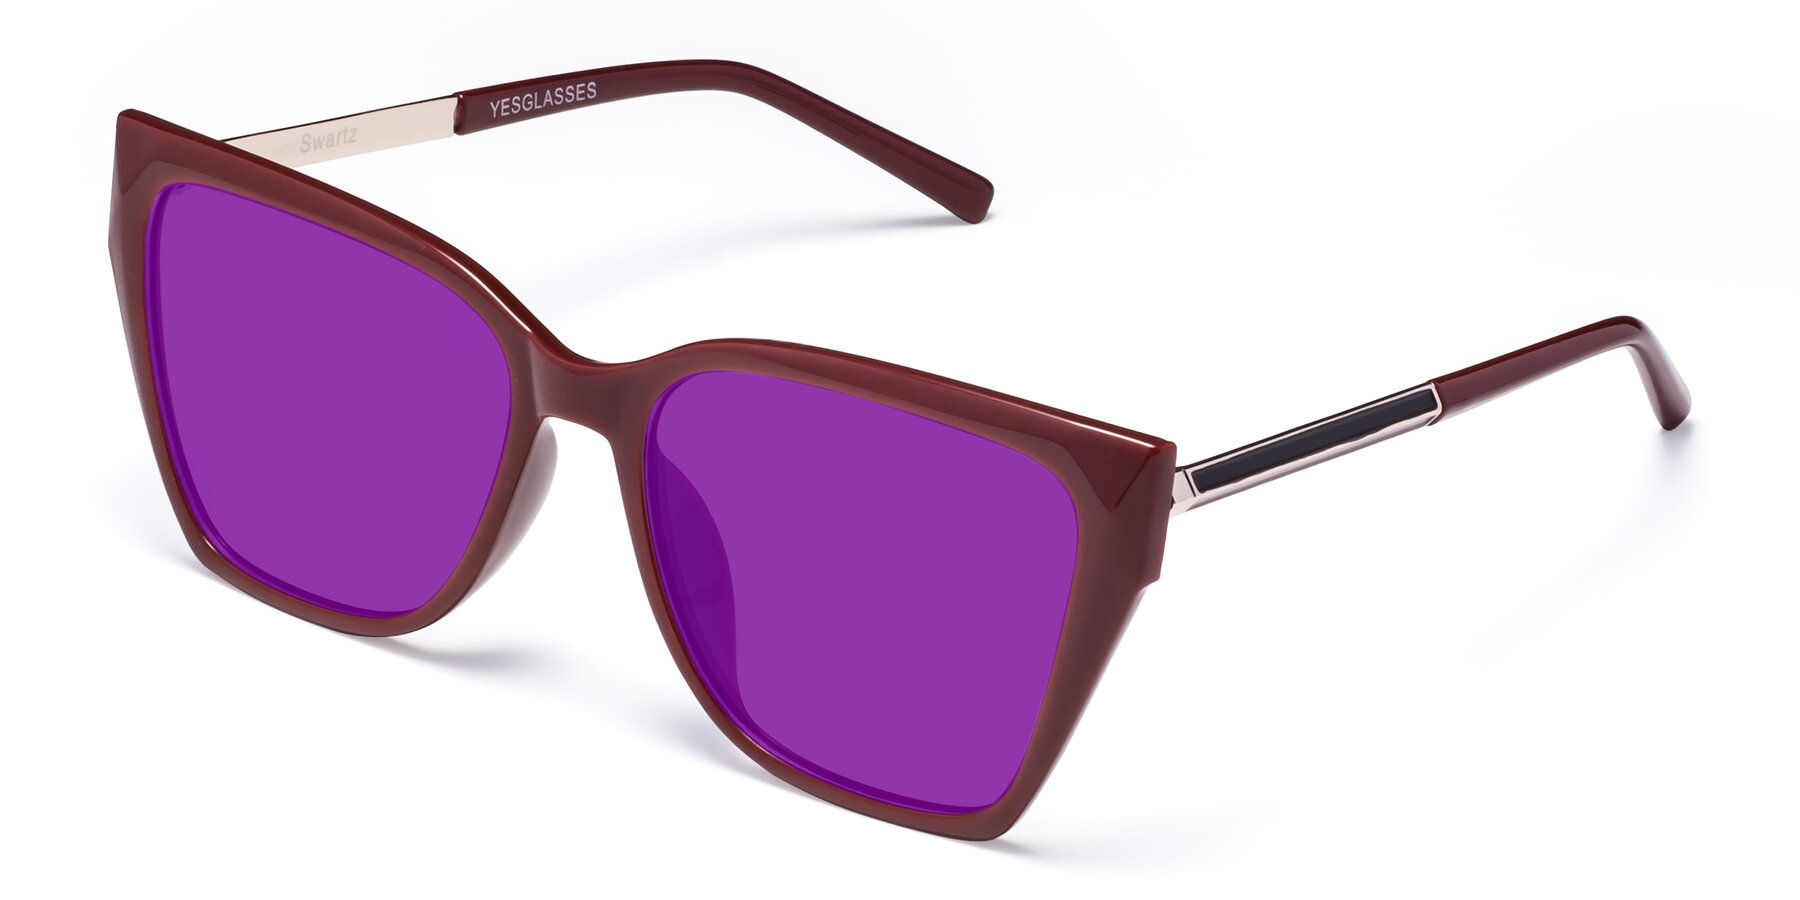 Angle of Swartz in Wine with Purple Tinted Lenses